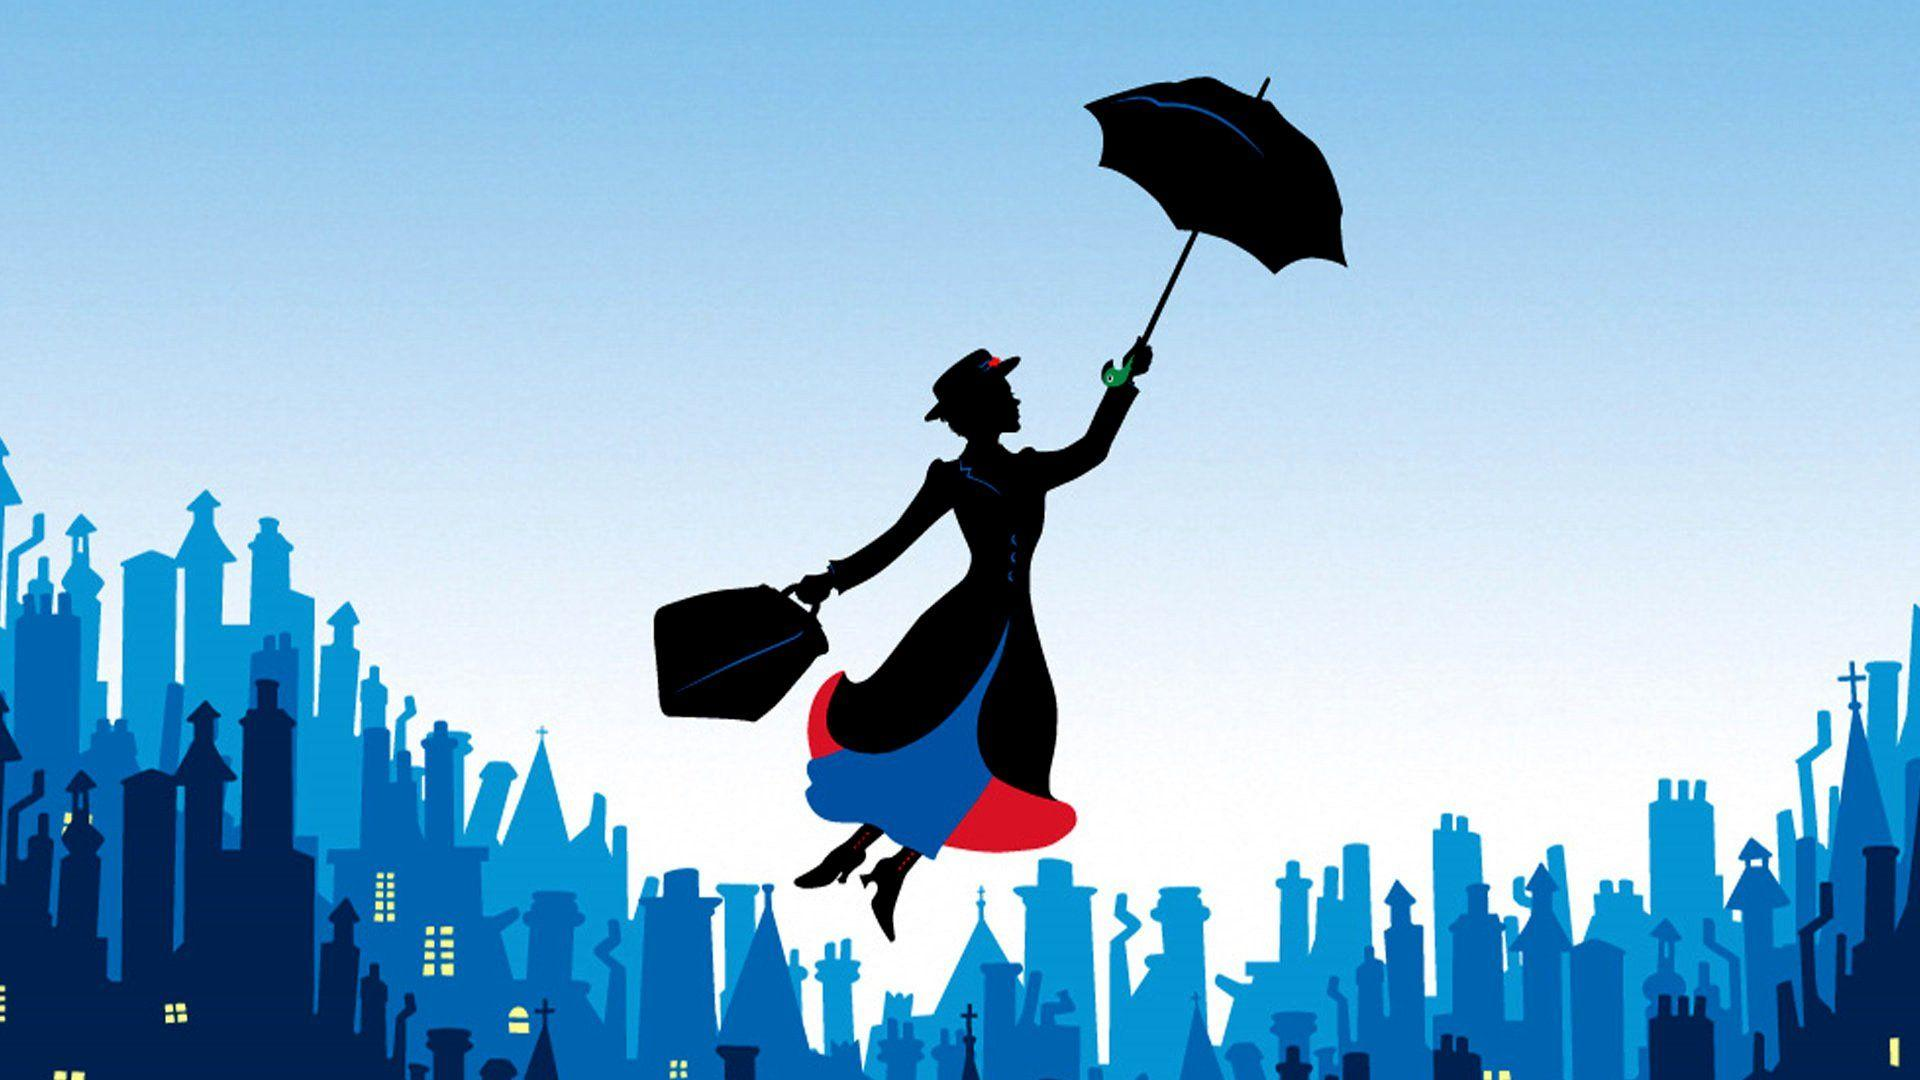 Mary poppins wallpapers wallpaper cave - Mary poppins wallpaper ...